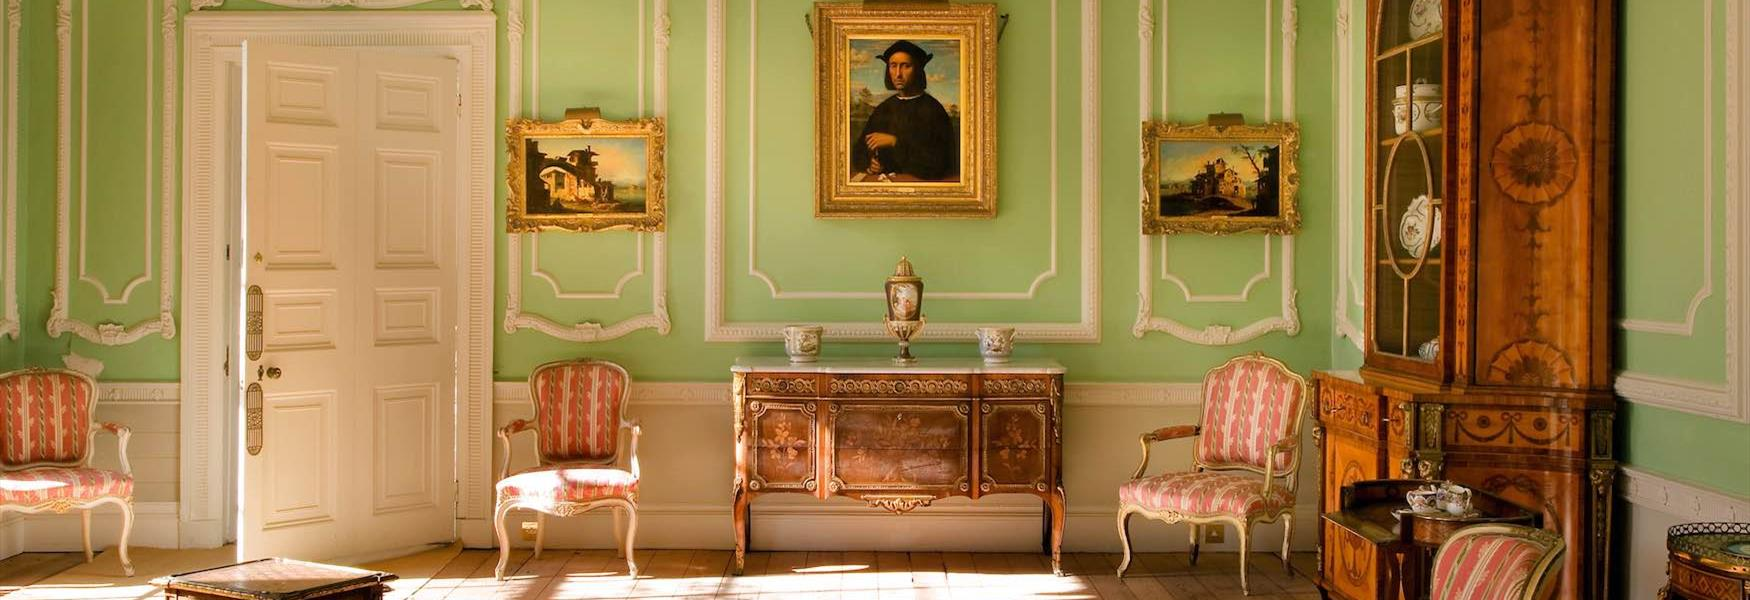 Firle Place Dining Room